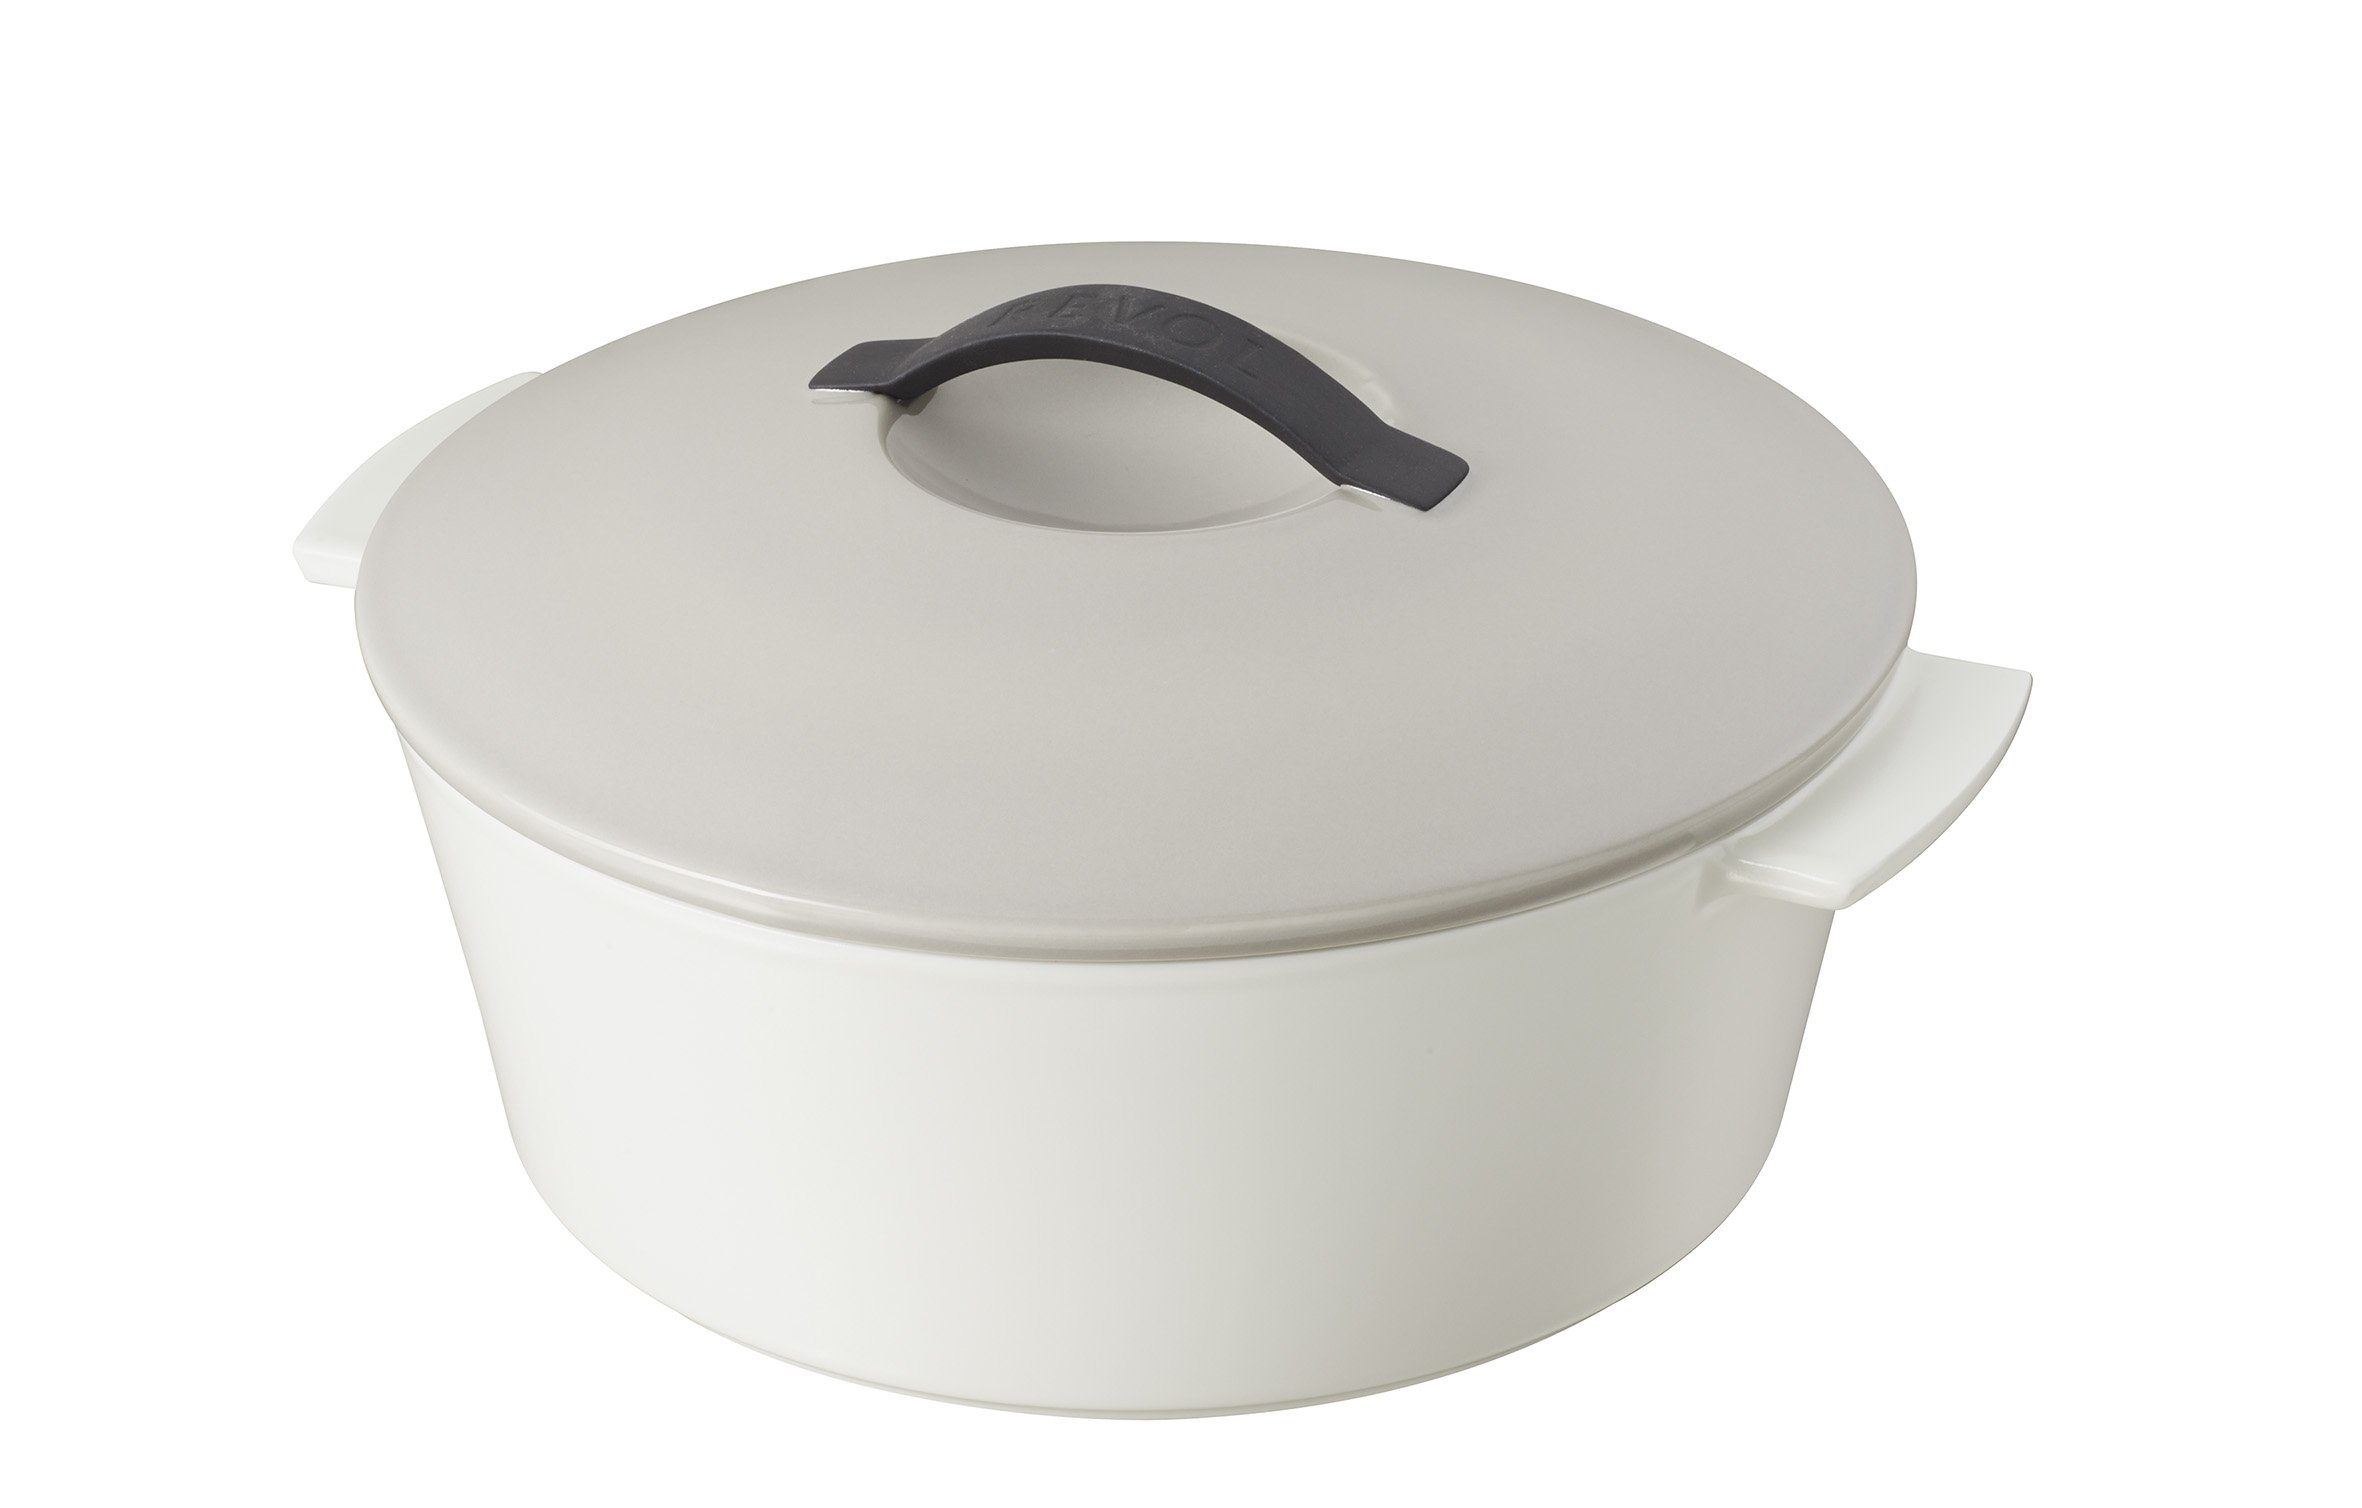 Revol USA Revolution Gifbox Induction Round Cocotte, 2.75-Quart, Taupe by Revol USA